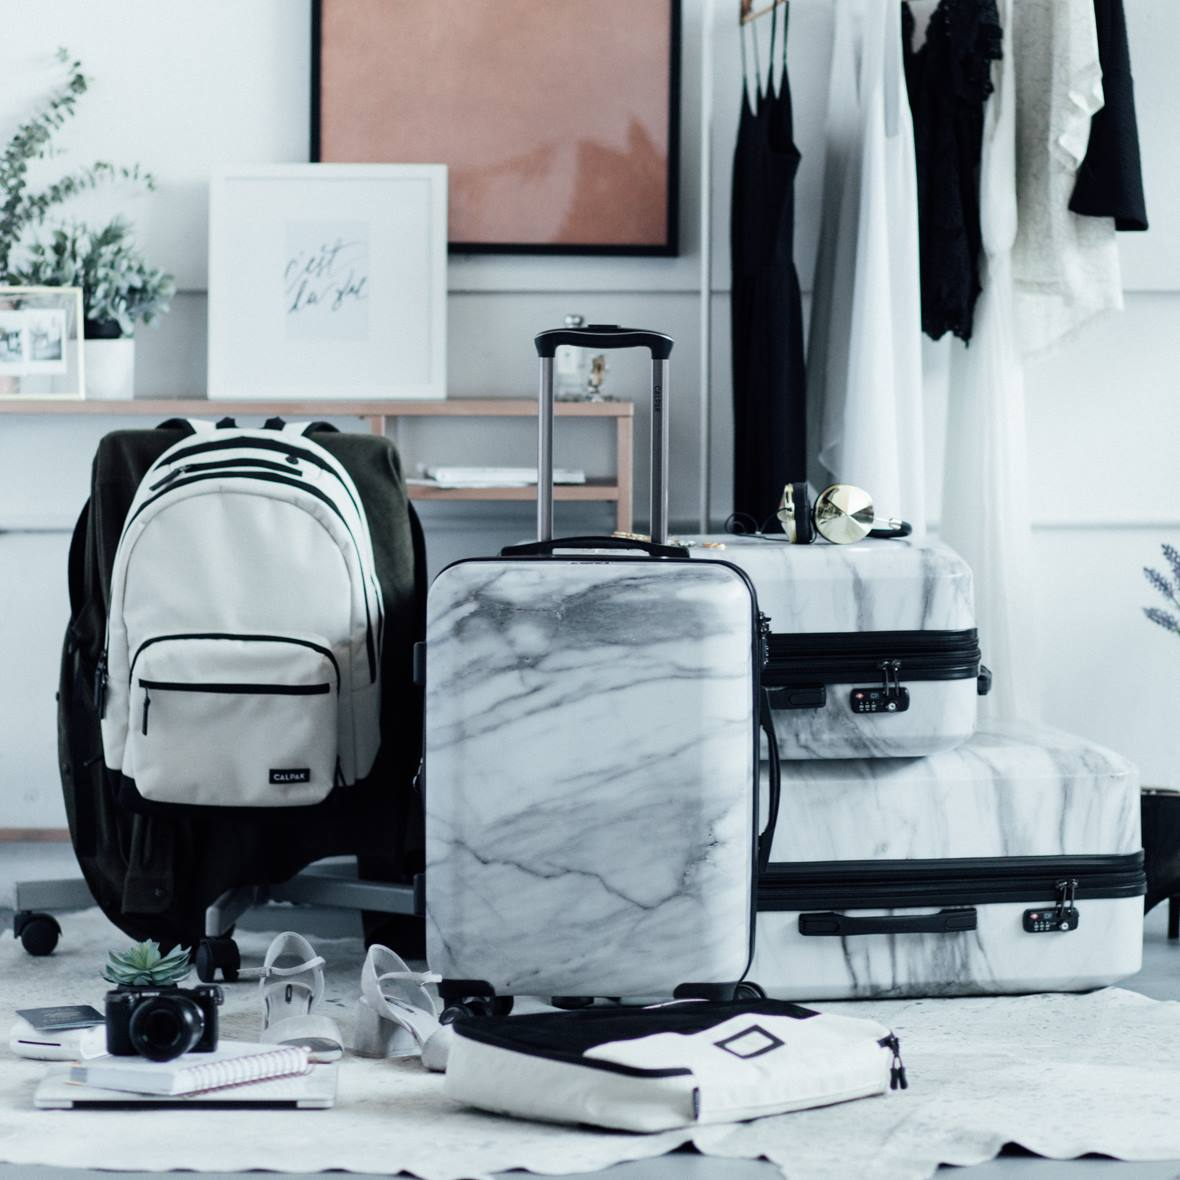 Asia Carrera Marble luggage as luxe as carrera marble